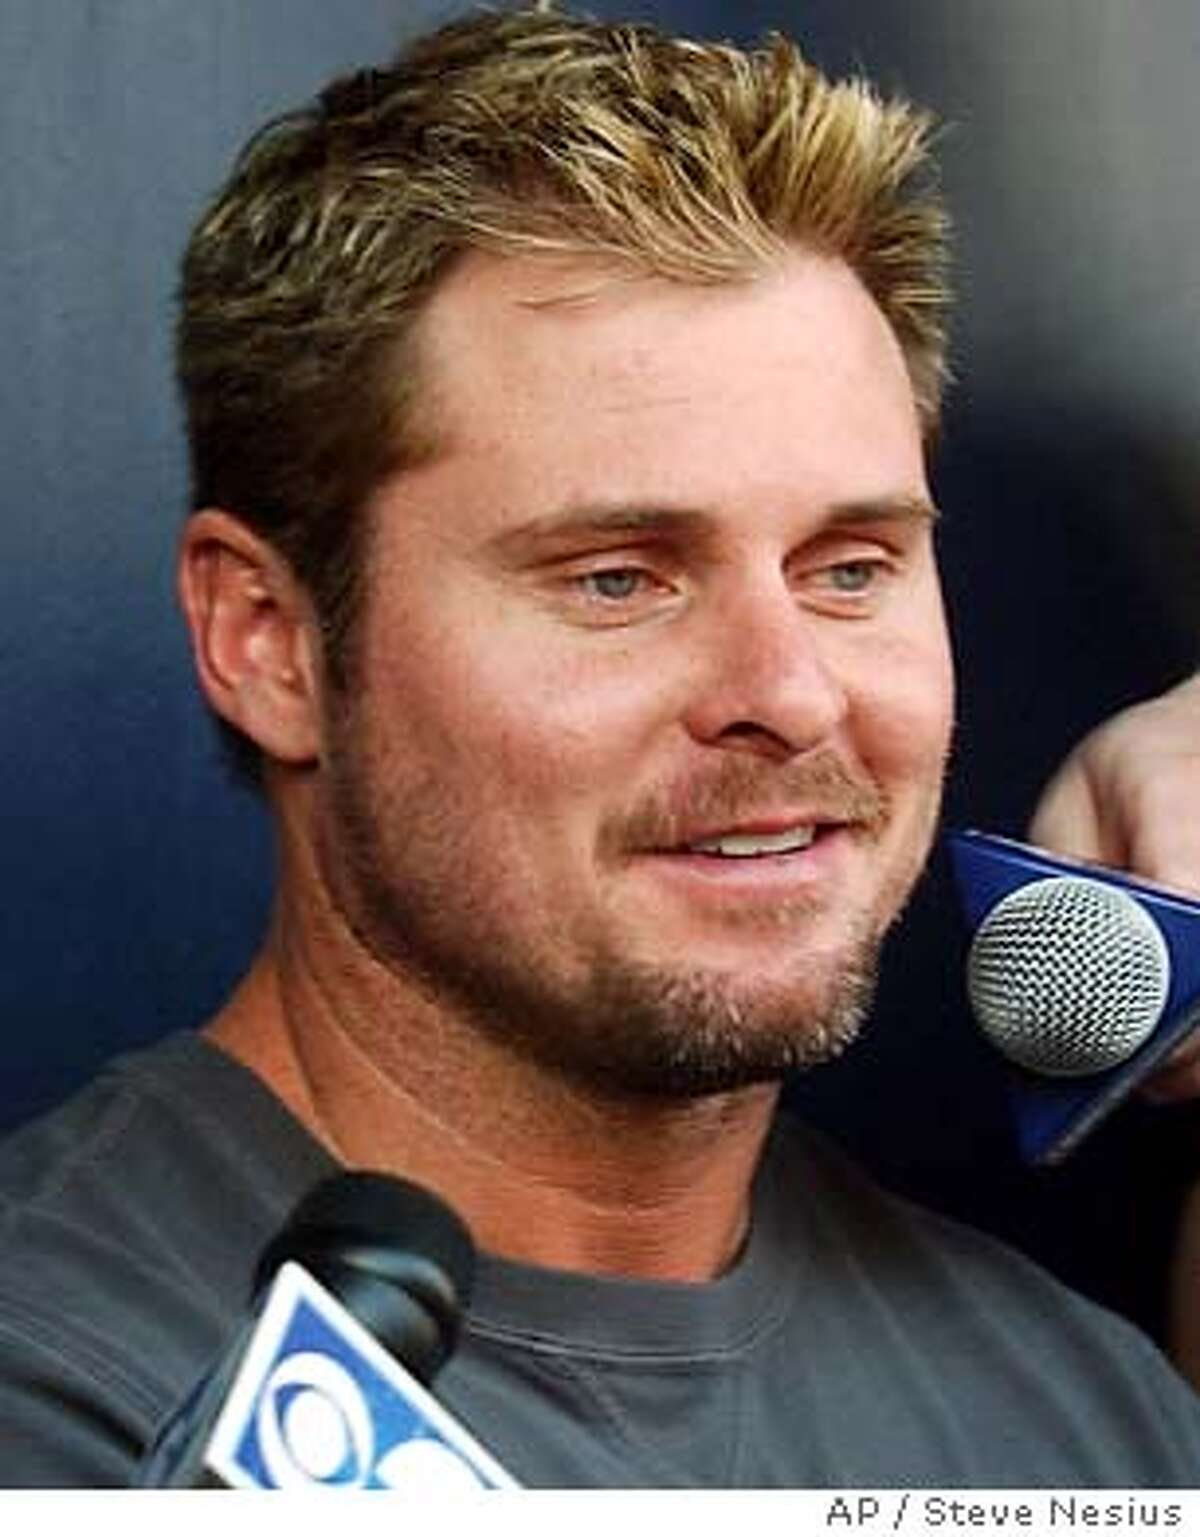 New York Yankees ' Jason Giambi talks with the media in the dugout at spring training camp Monday, Feb. 23, 2004 at Legends Field in Tampa, Fla. Position players report Tuesday for their first team workout. (AP Photo/Steve Nesius)